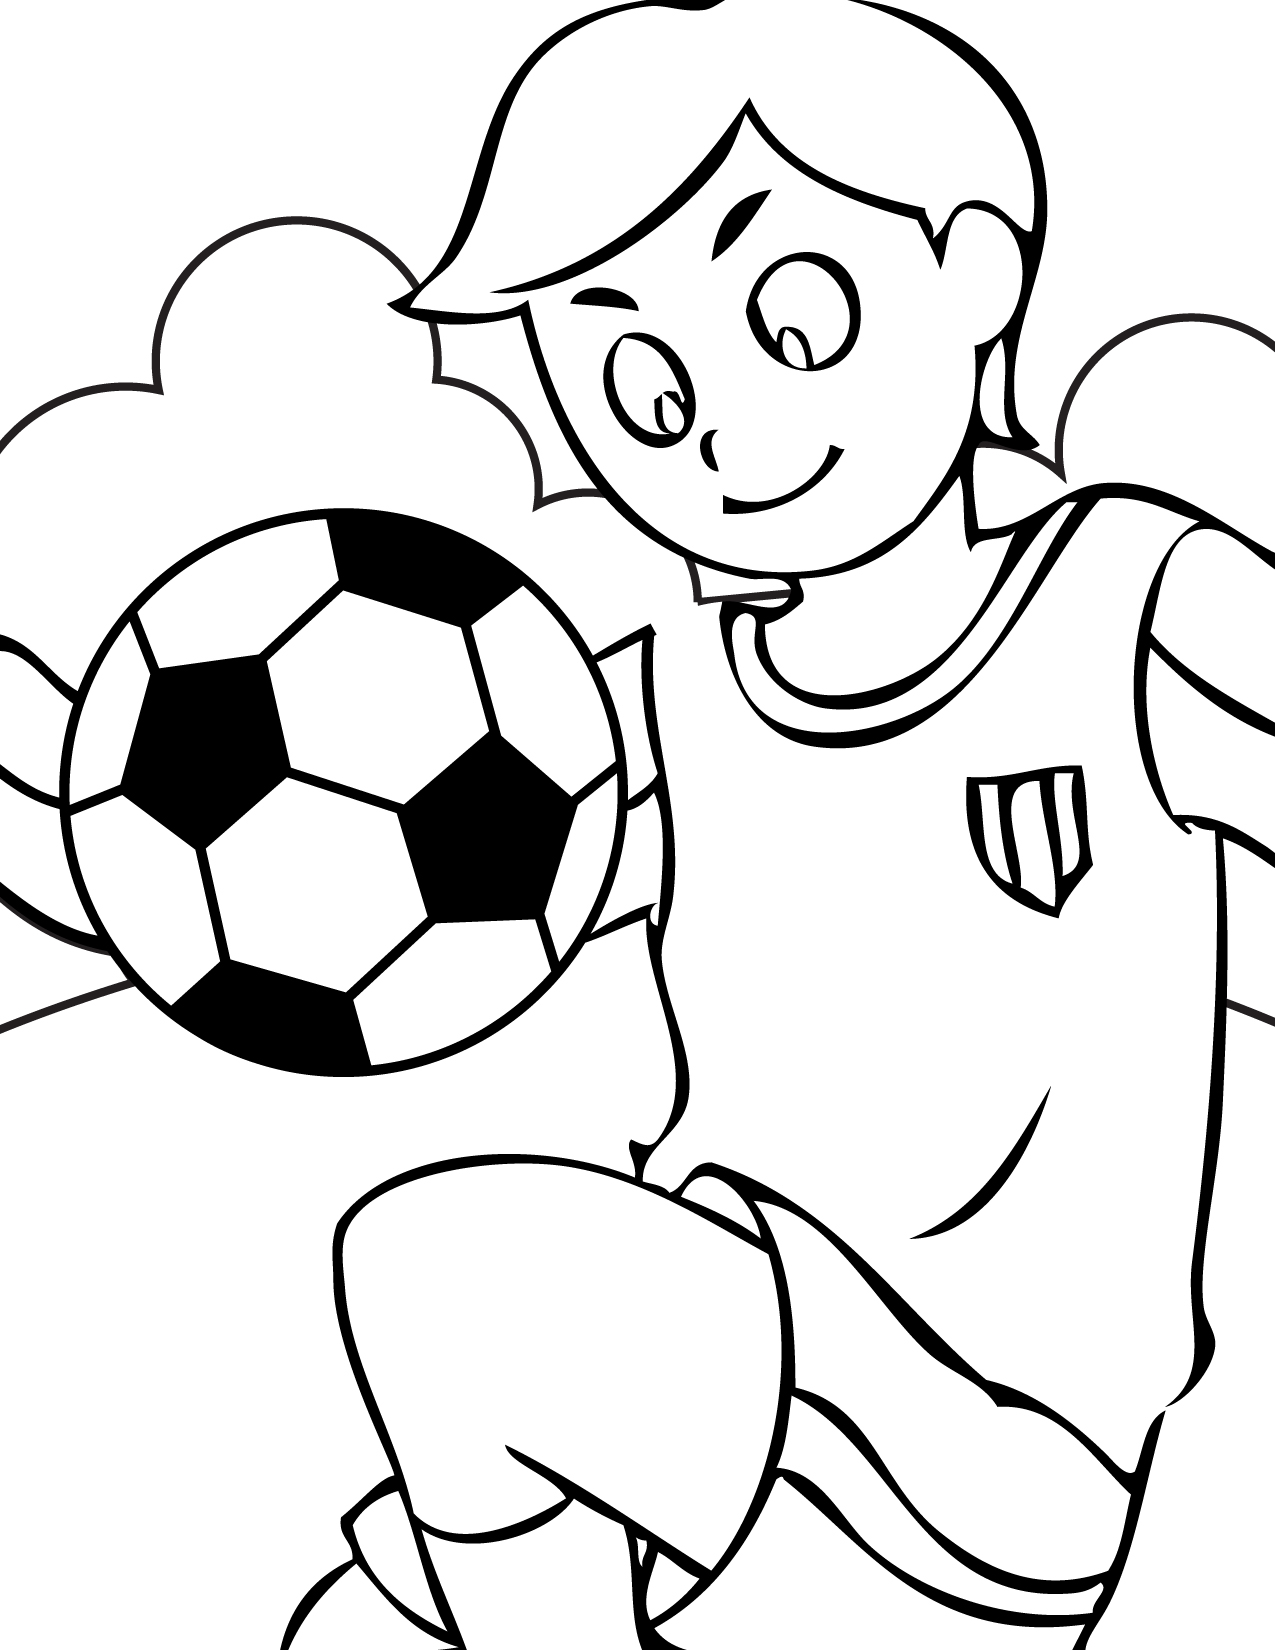 Soccer Coloring Pages (5)